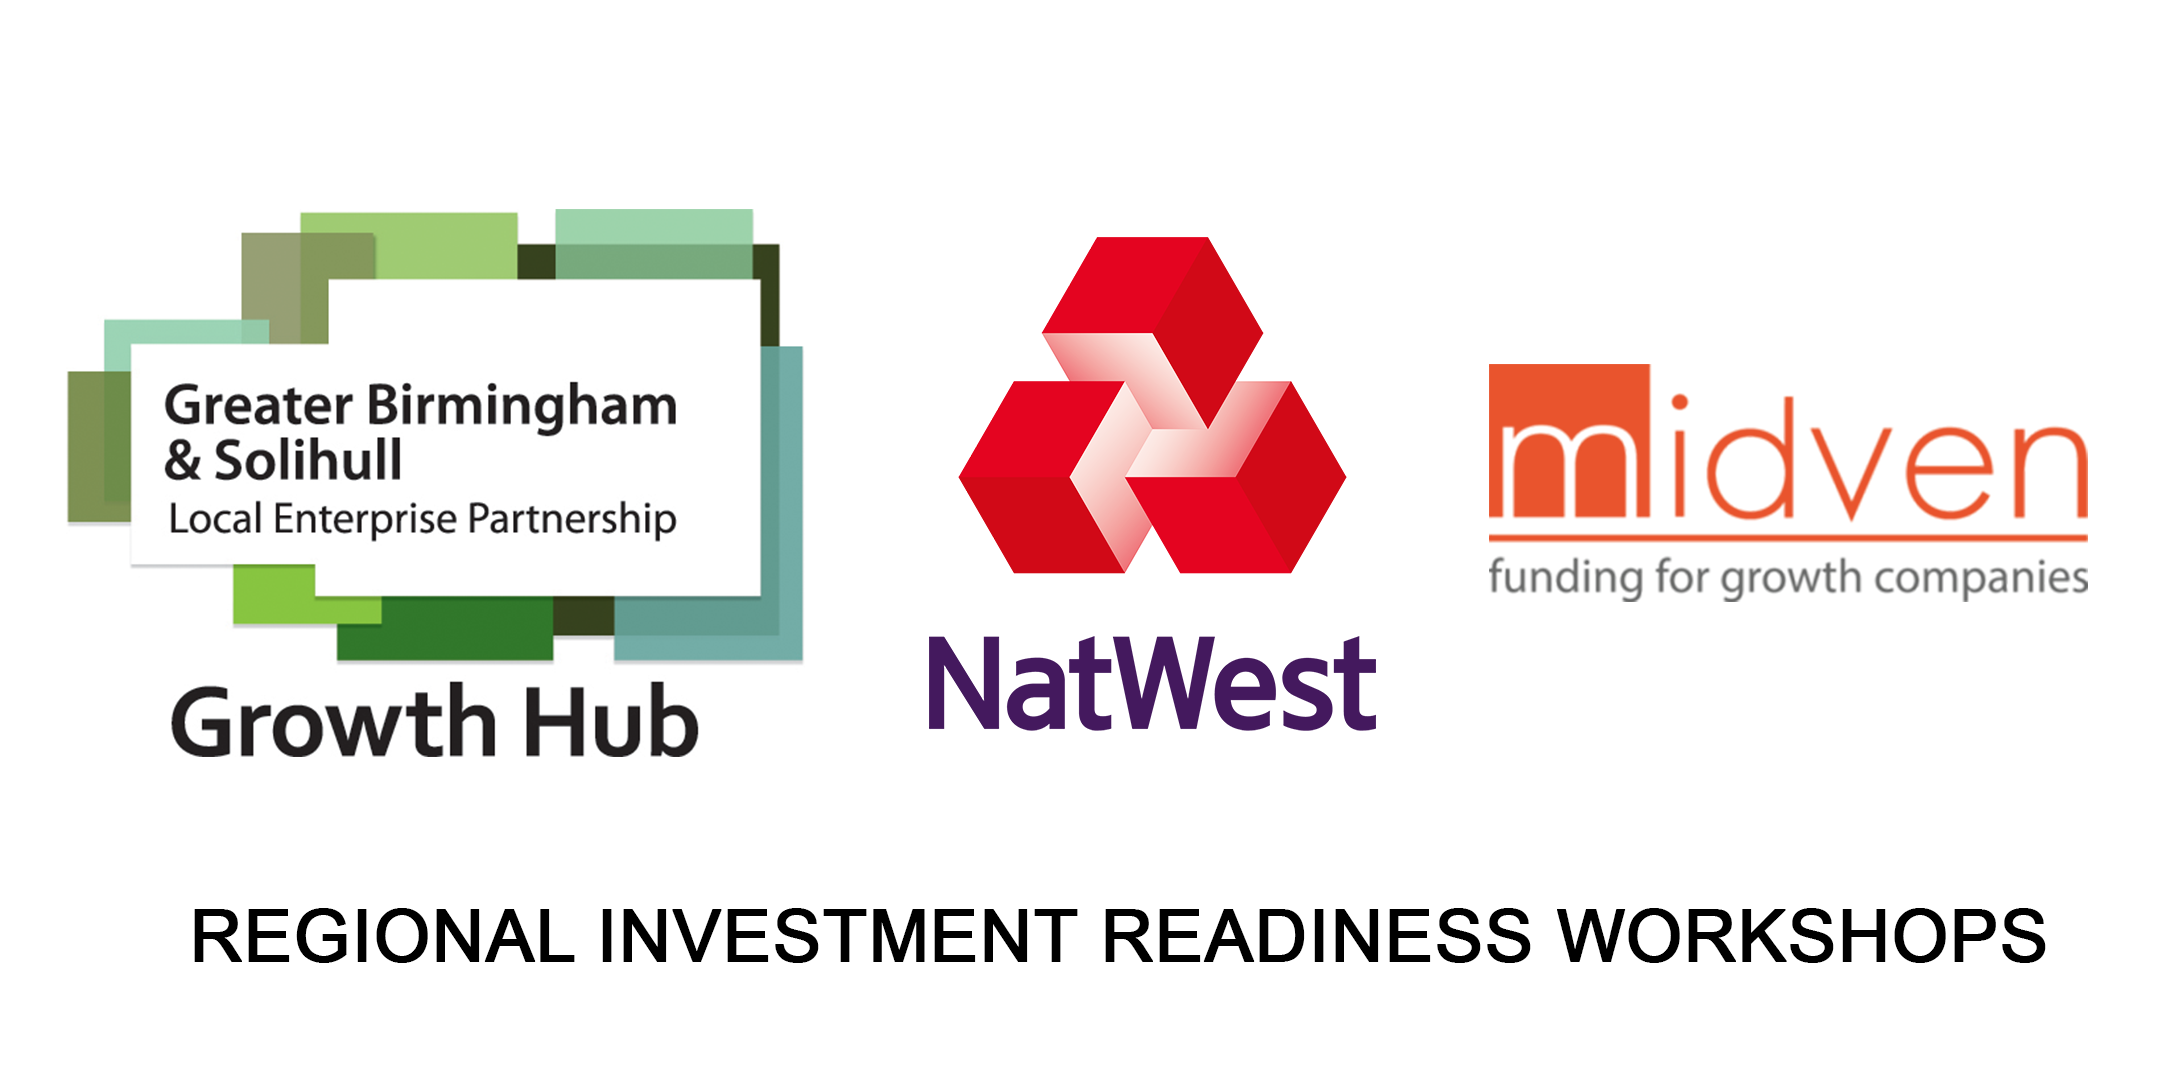 Unique opportunity for high-growth in investment readiness workshops